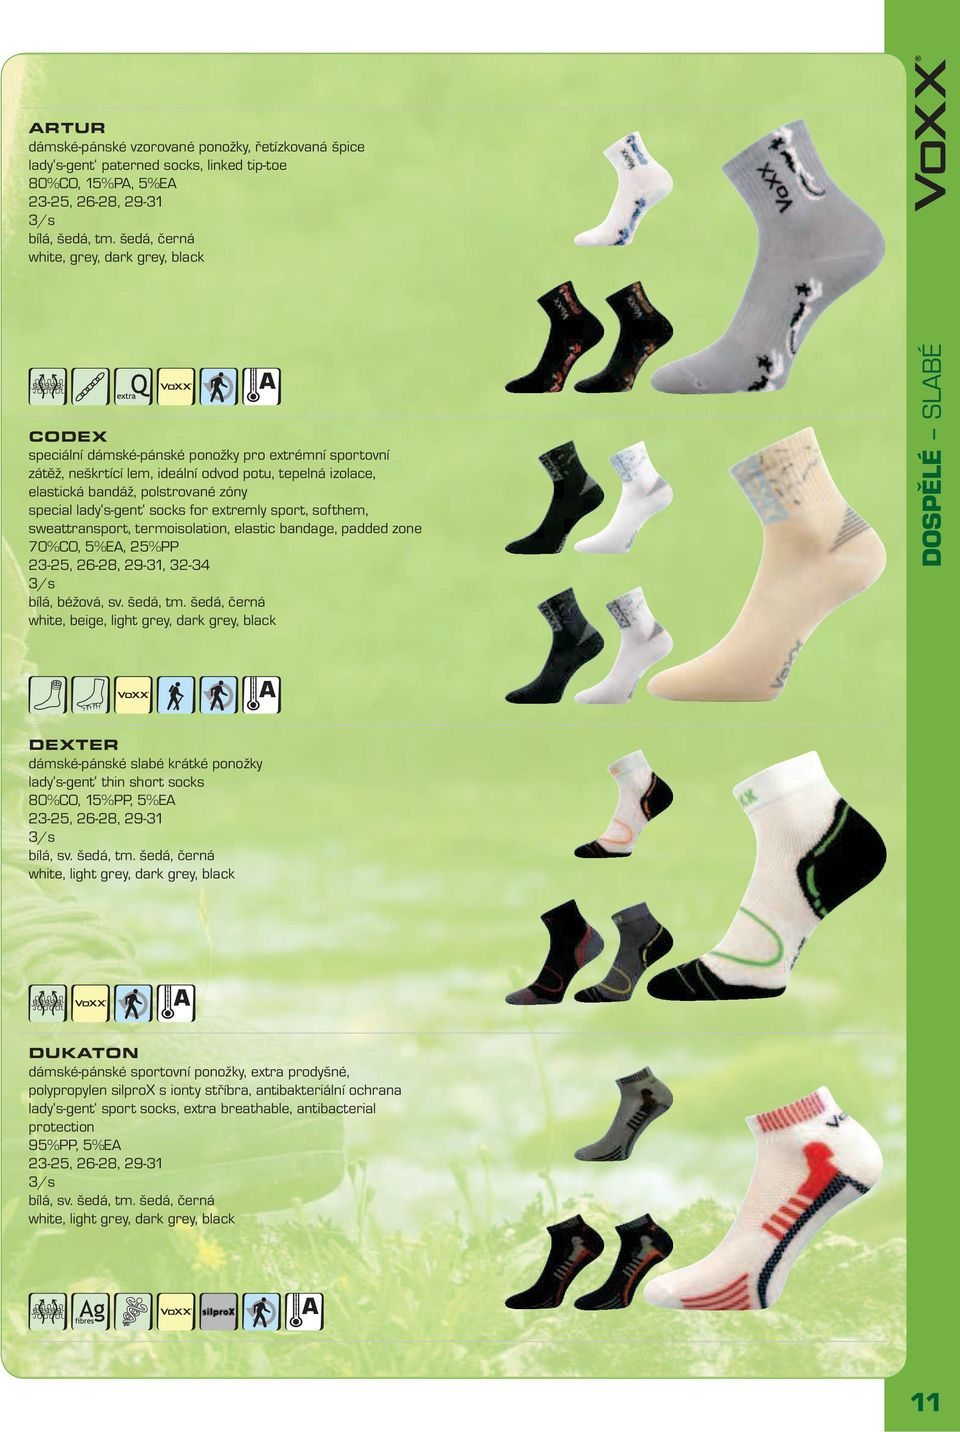 special lady s-gent socks for extremly sport cdd79de934